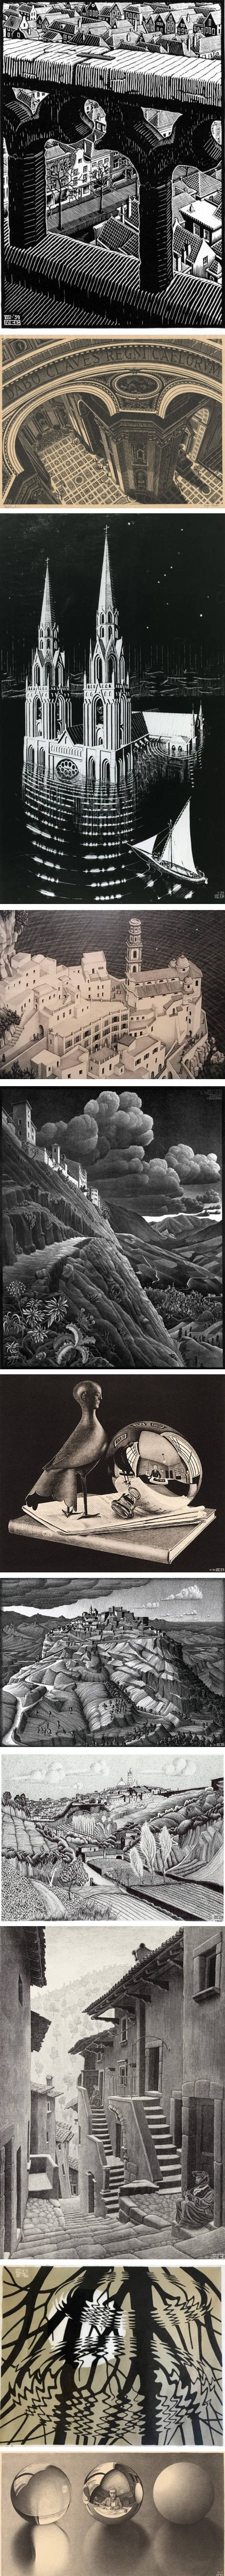 Some early work by M.C. Escher